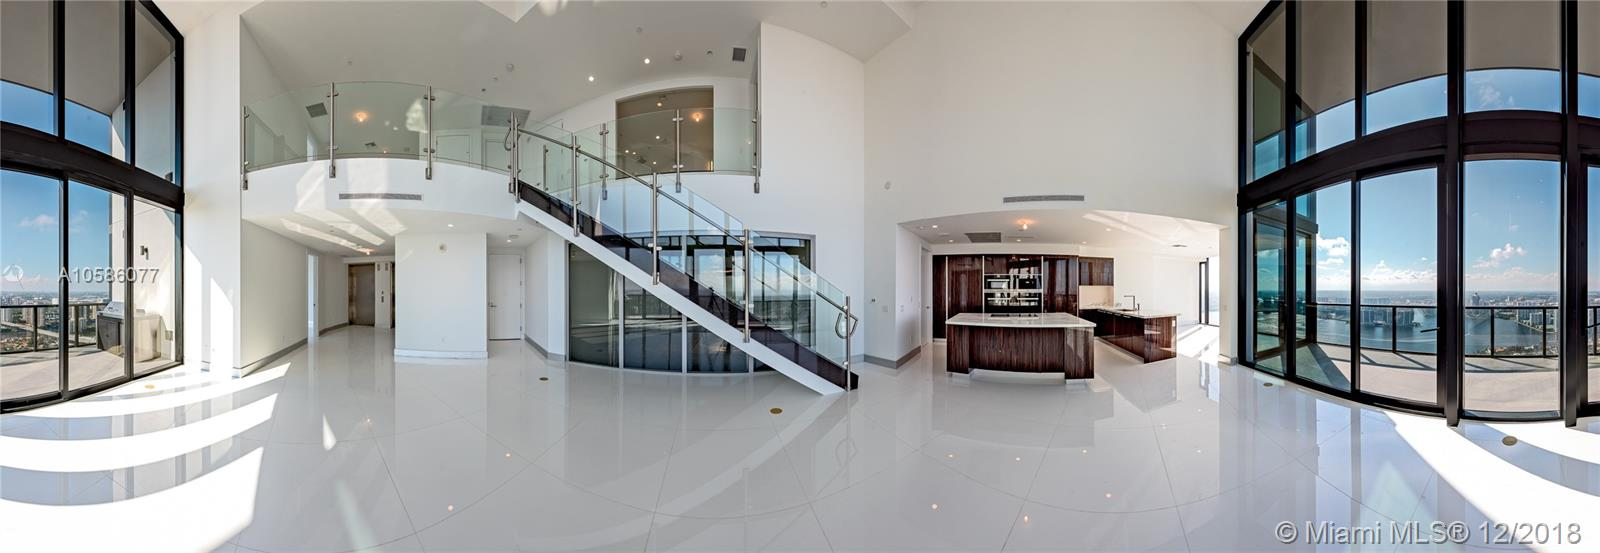 18555 Collins ave-4804 sunny-isles-beach-fl-33160-a10586077-Pic11